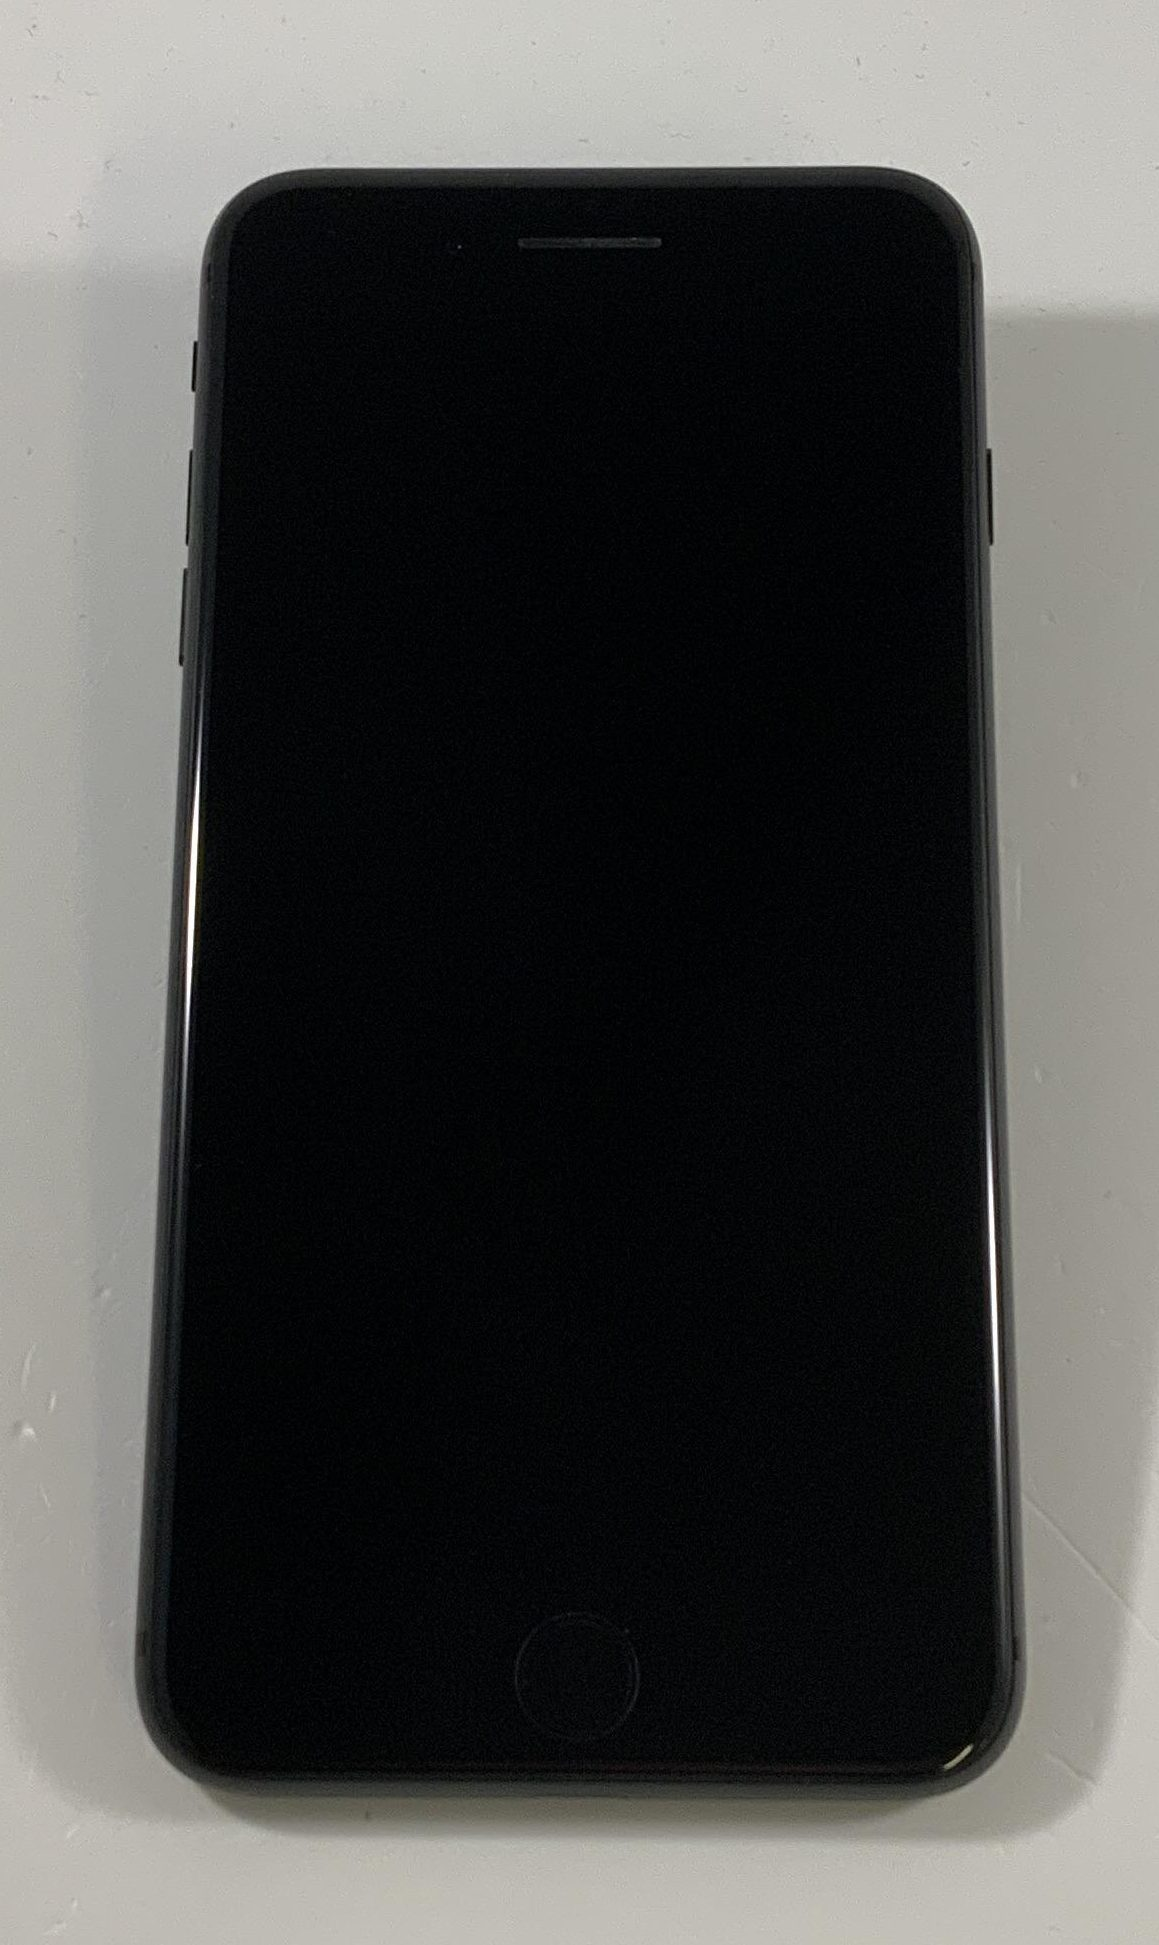 iPhone 8 Plus 256GB, 256GB, Space Gray, Bild 1